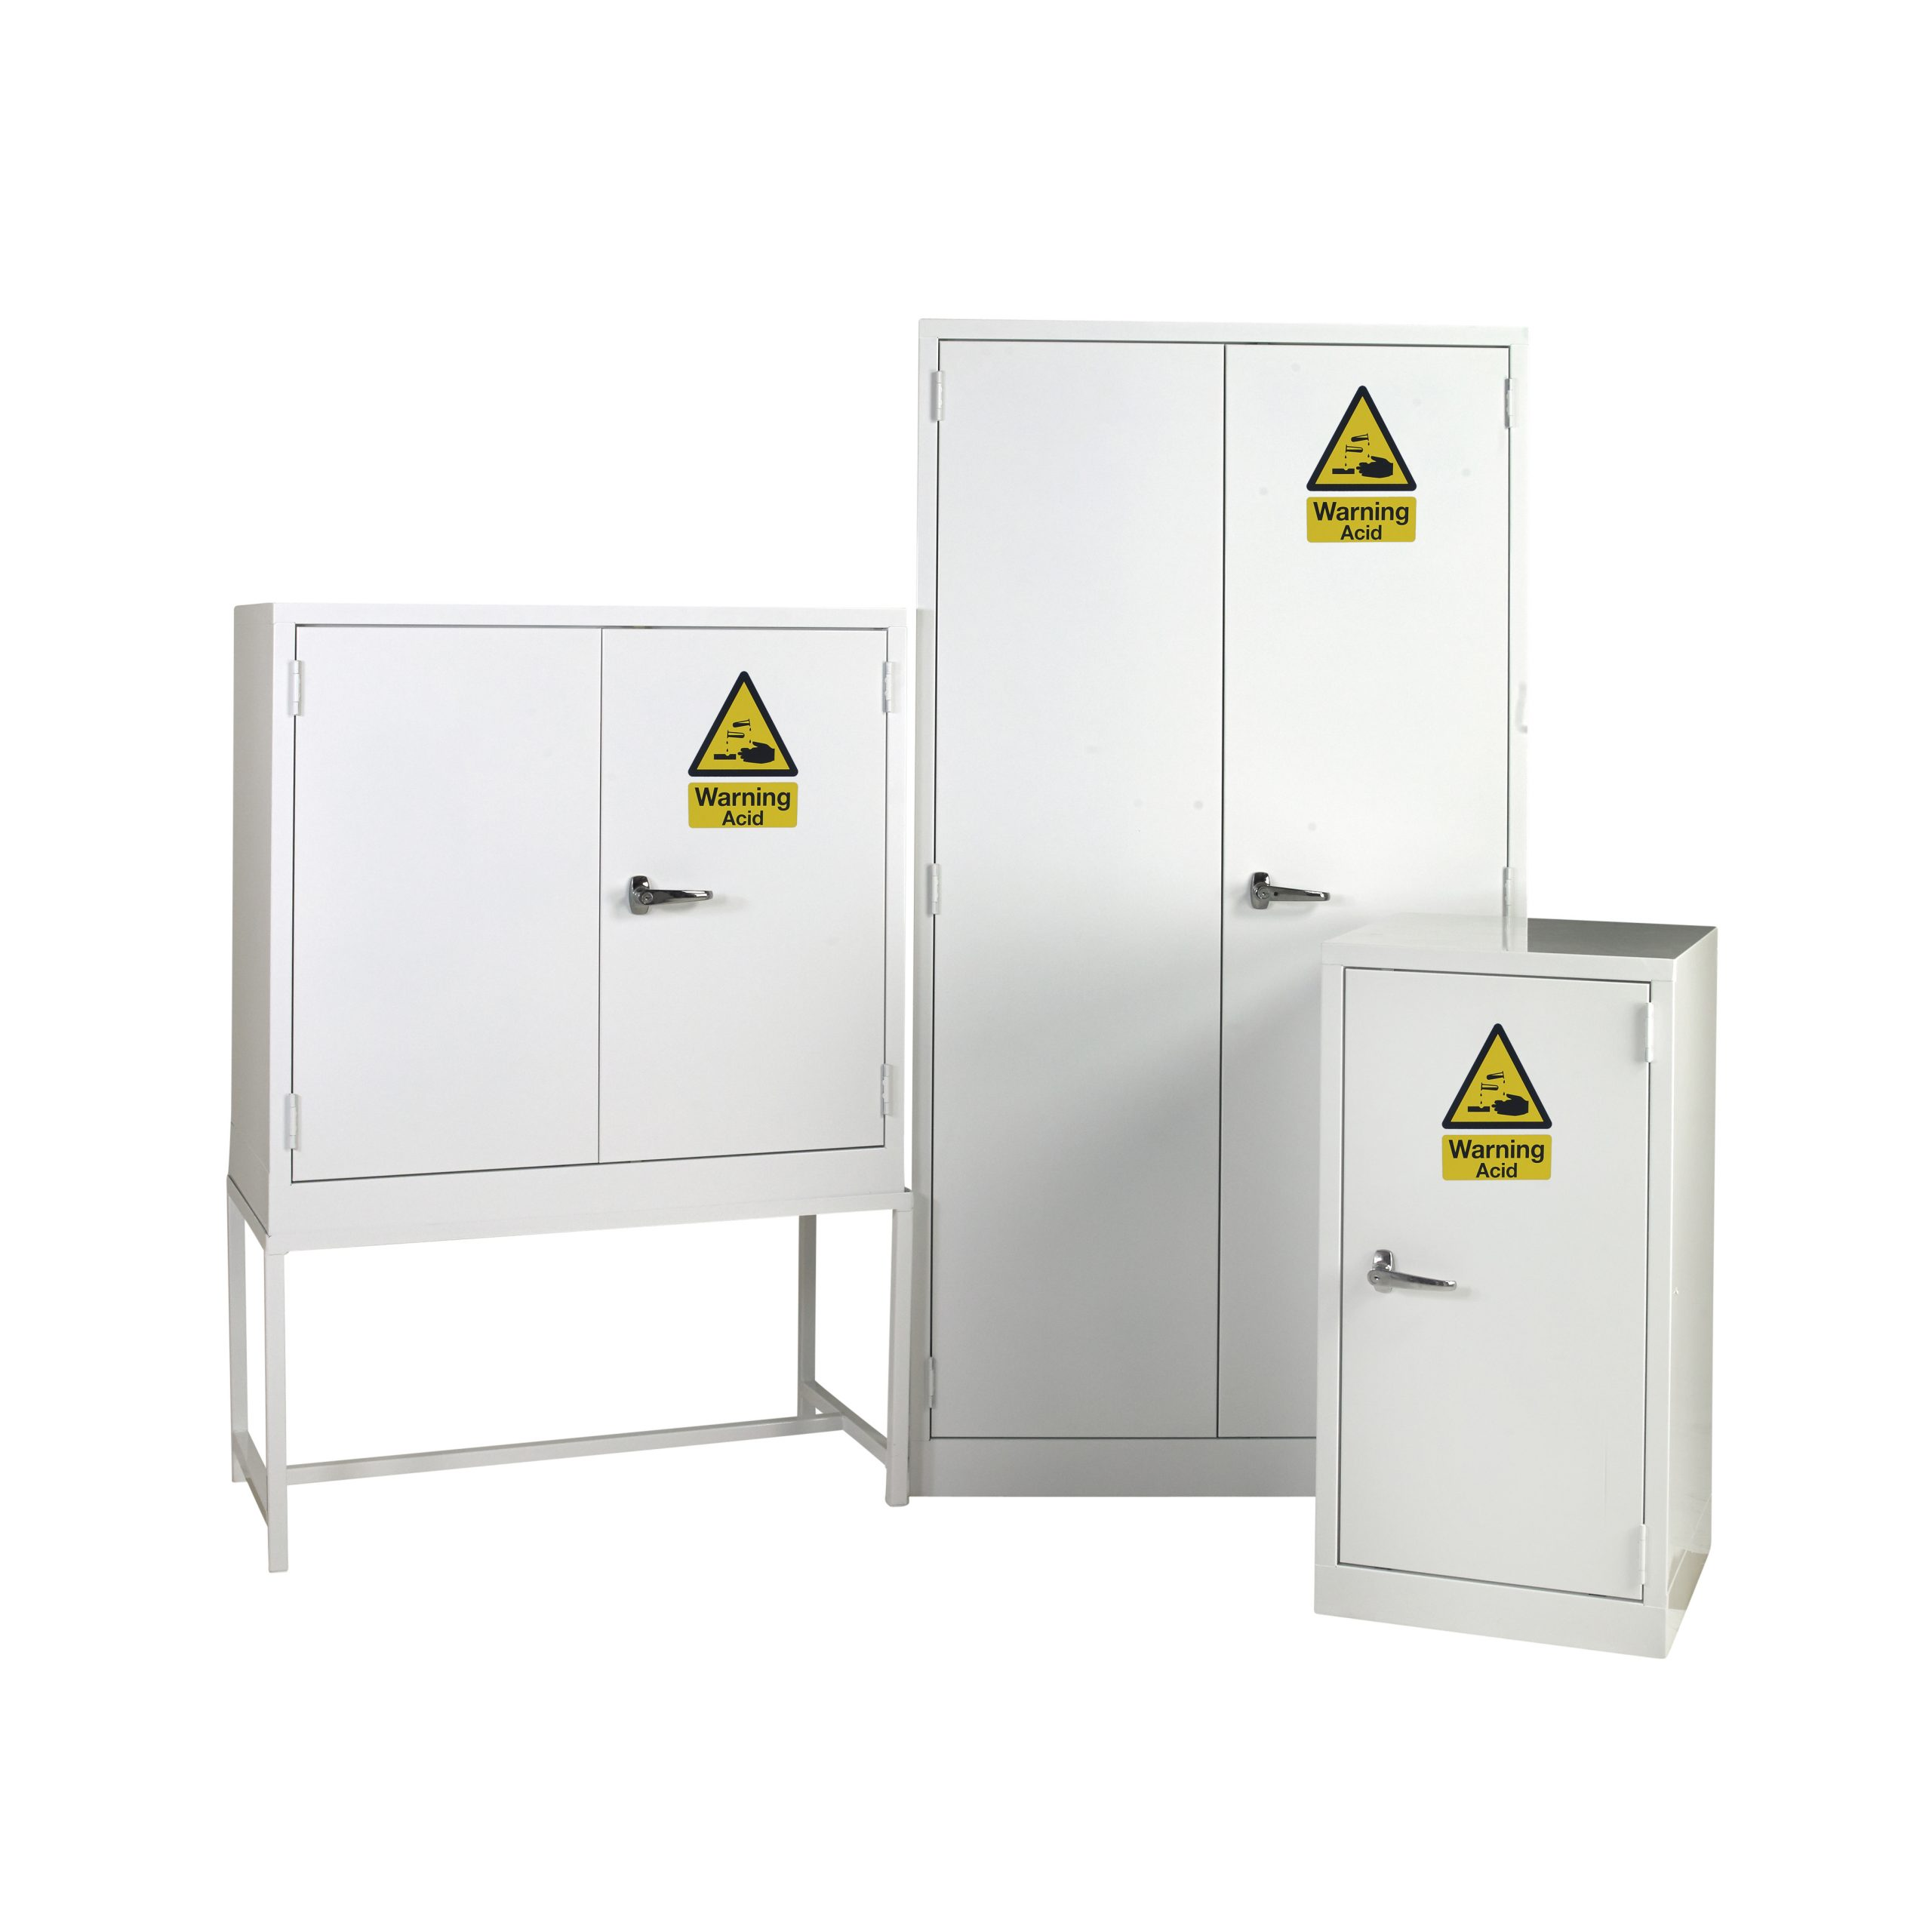 Chemical Storage Cabinets by Step and Store